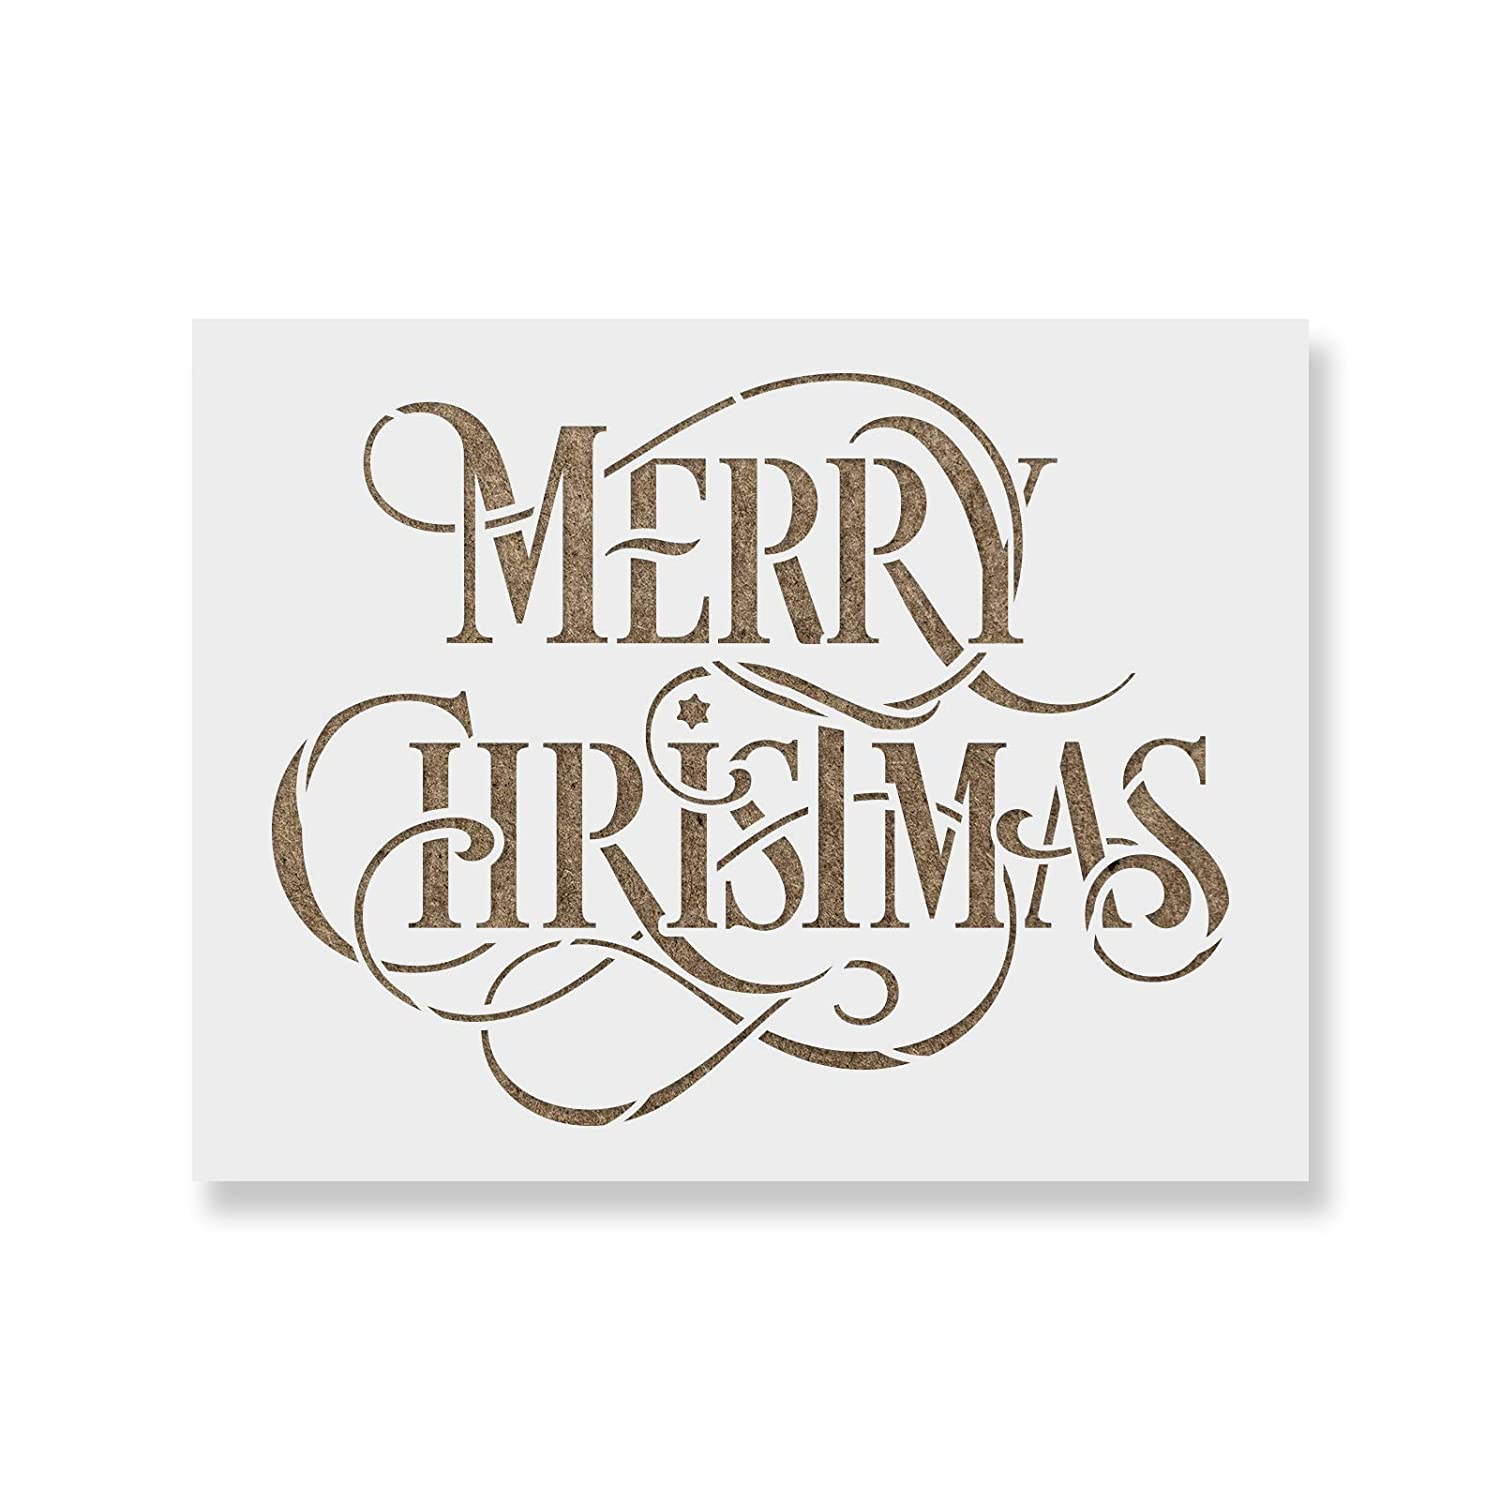 Merry Christmas Stencil - Perfect Stencil for Painting Wood Signs - Reusable Stencils for Christmas Stencil Revolution